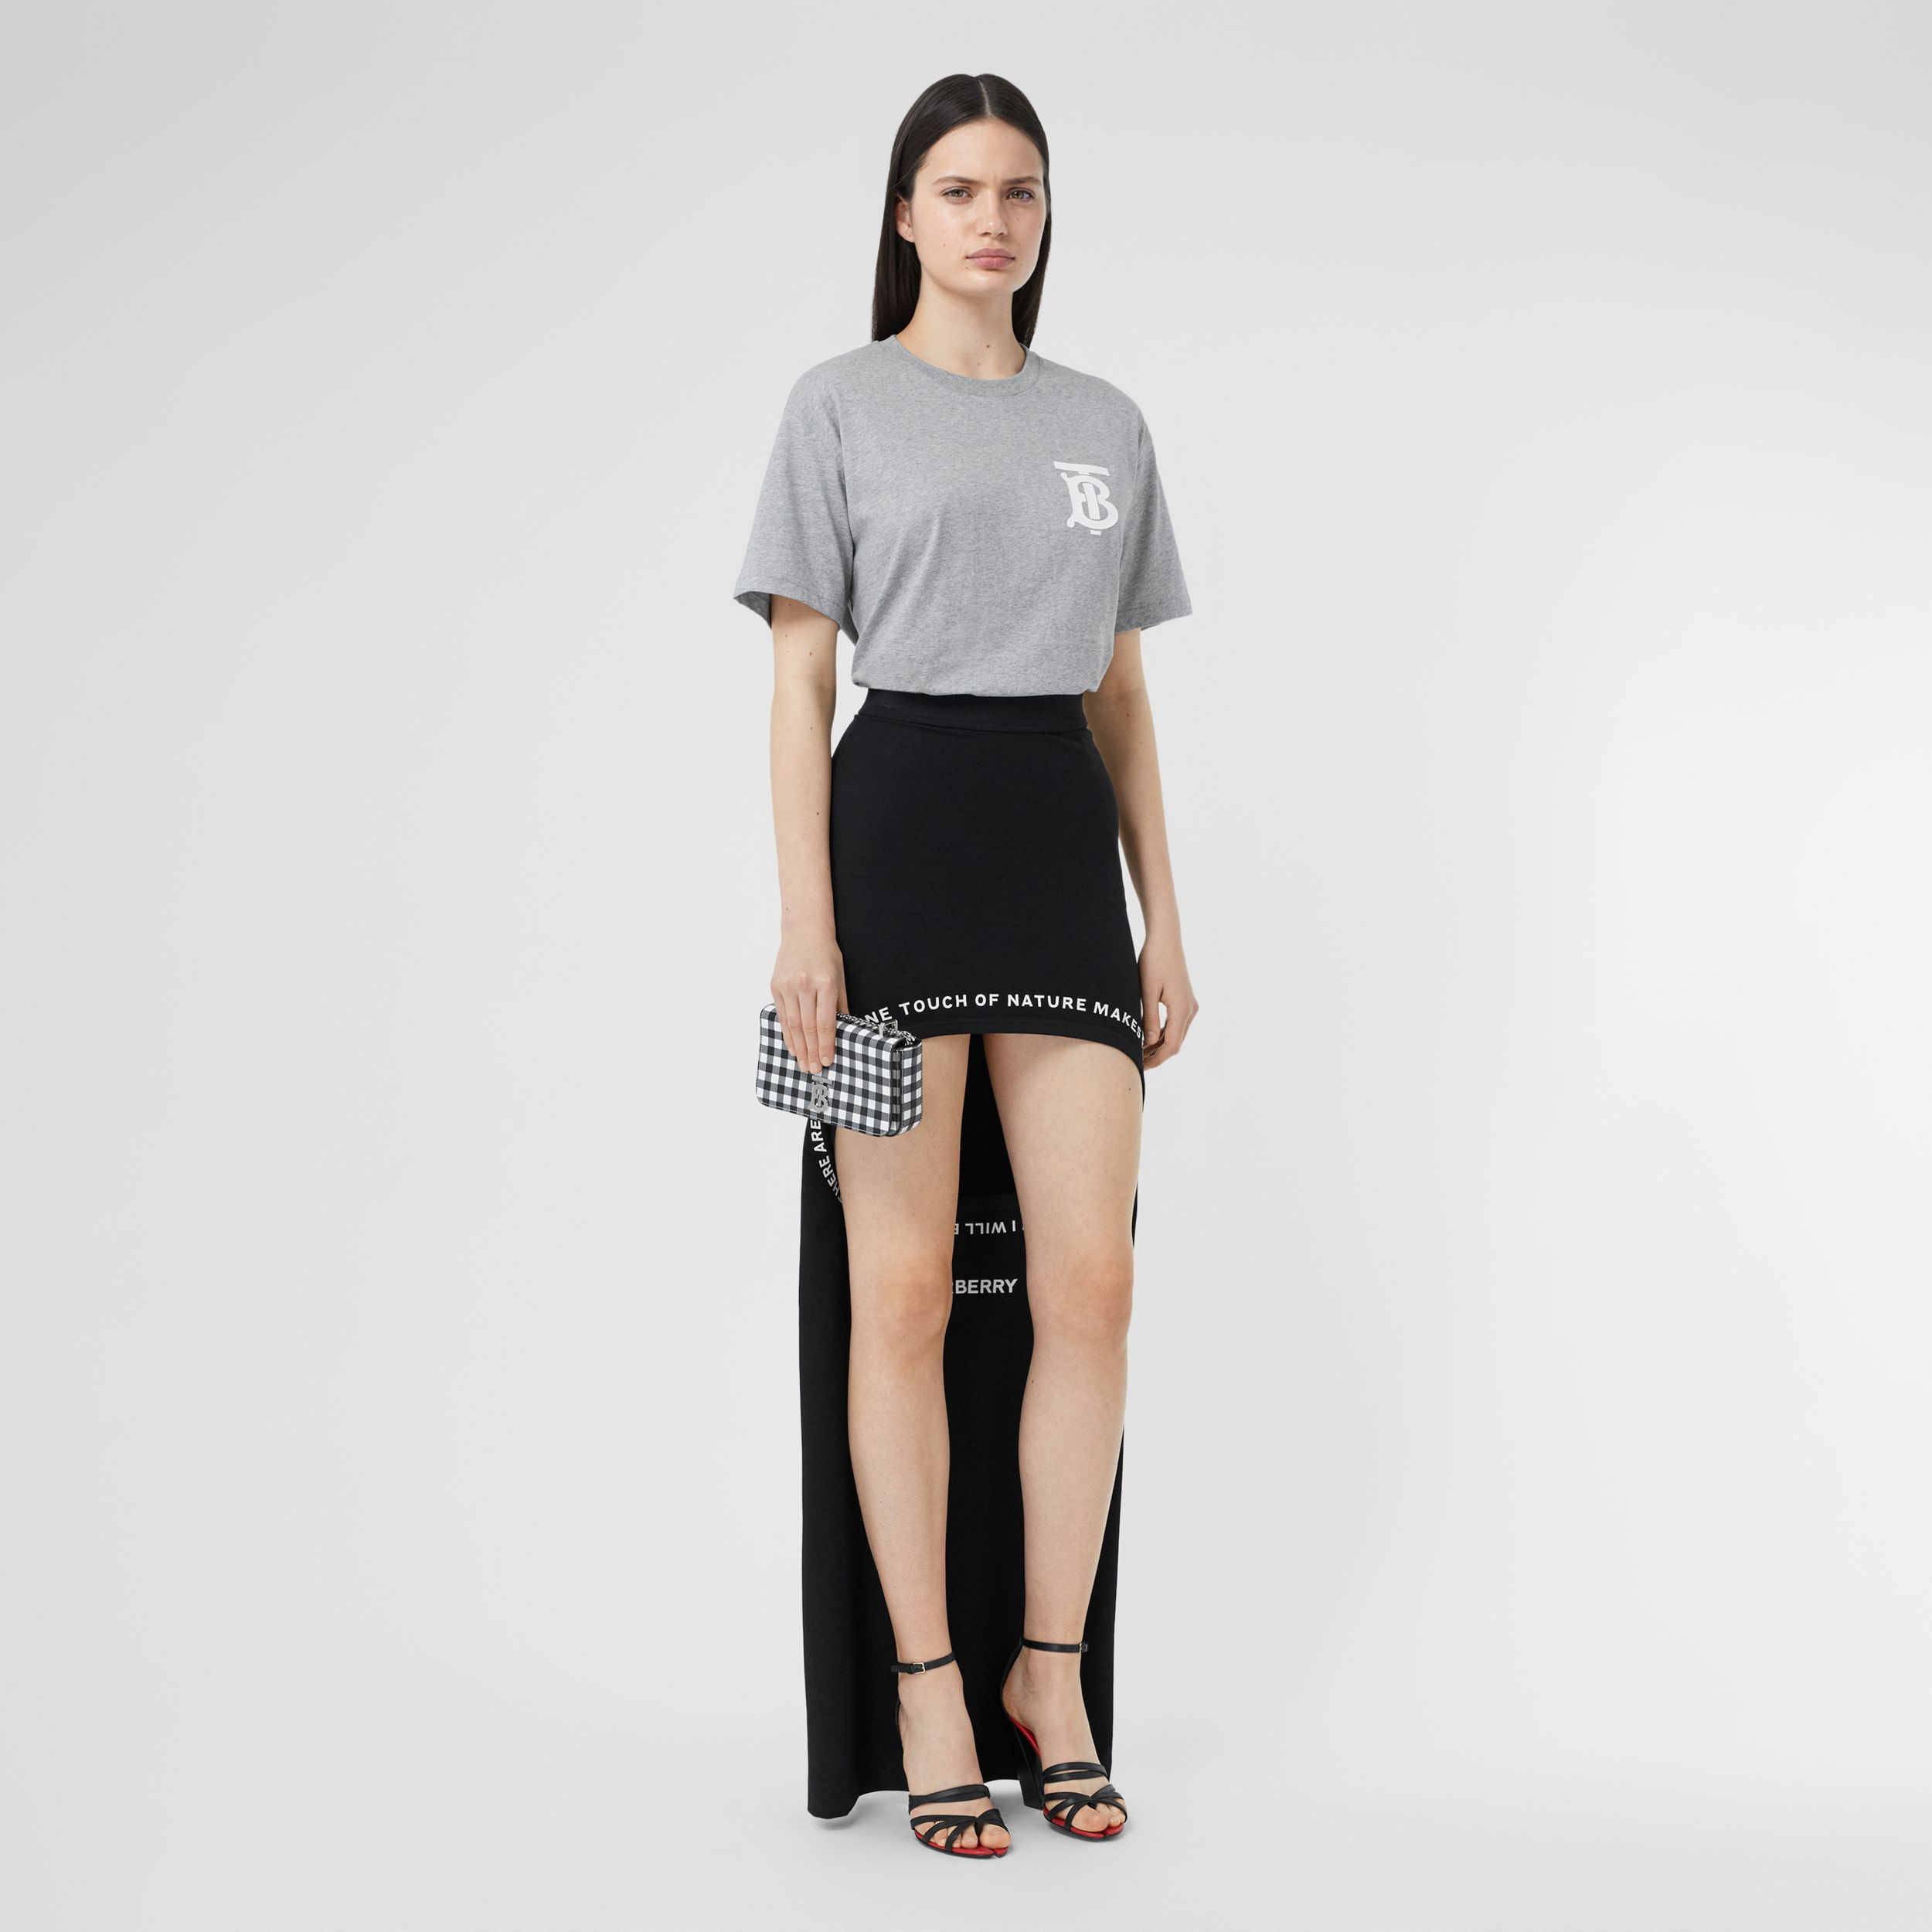 Monogram Motif Cotton Oversized T-shirt in Pale Grey Melange - Women | Burberry - 1